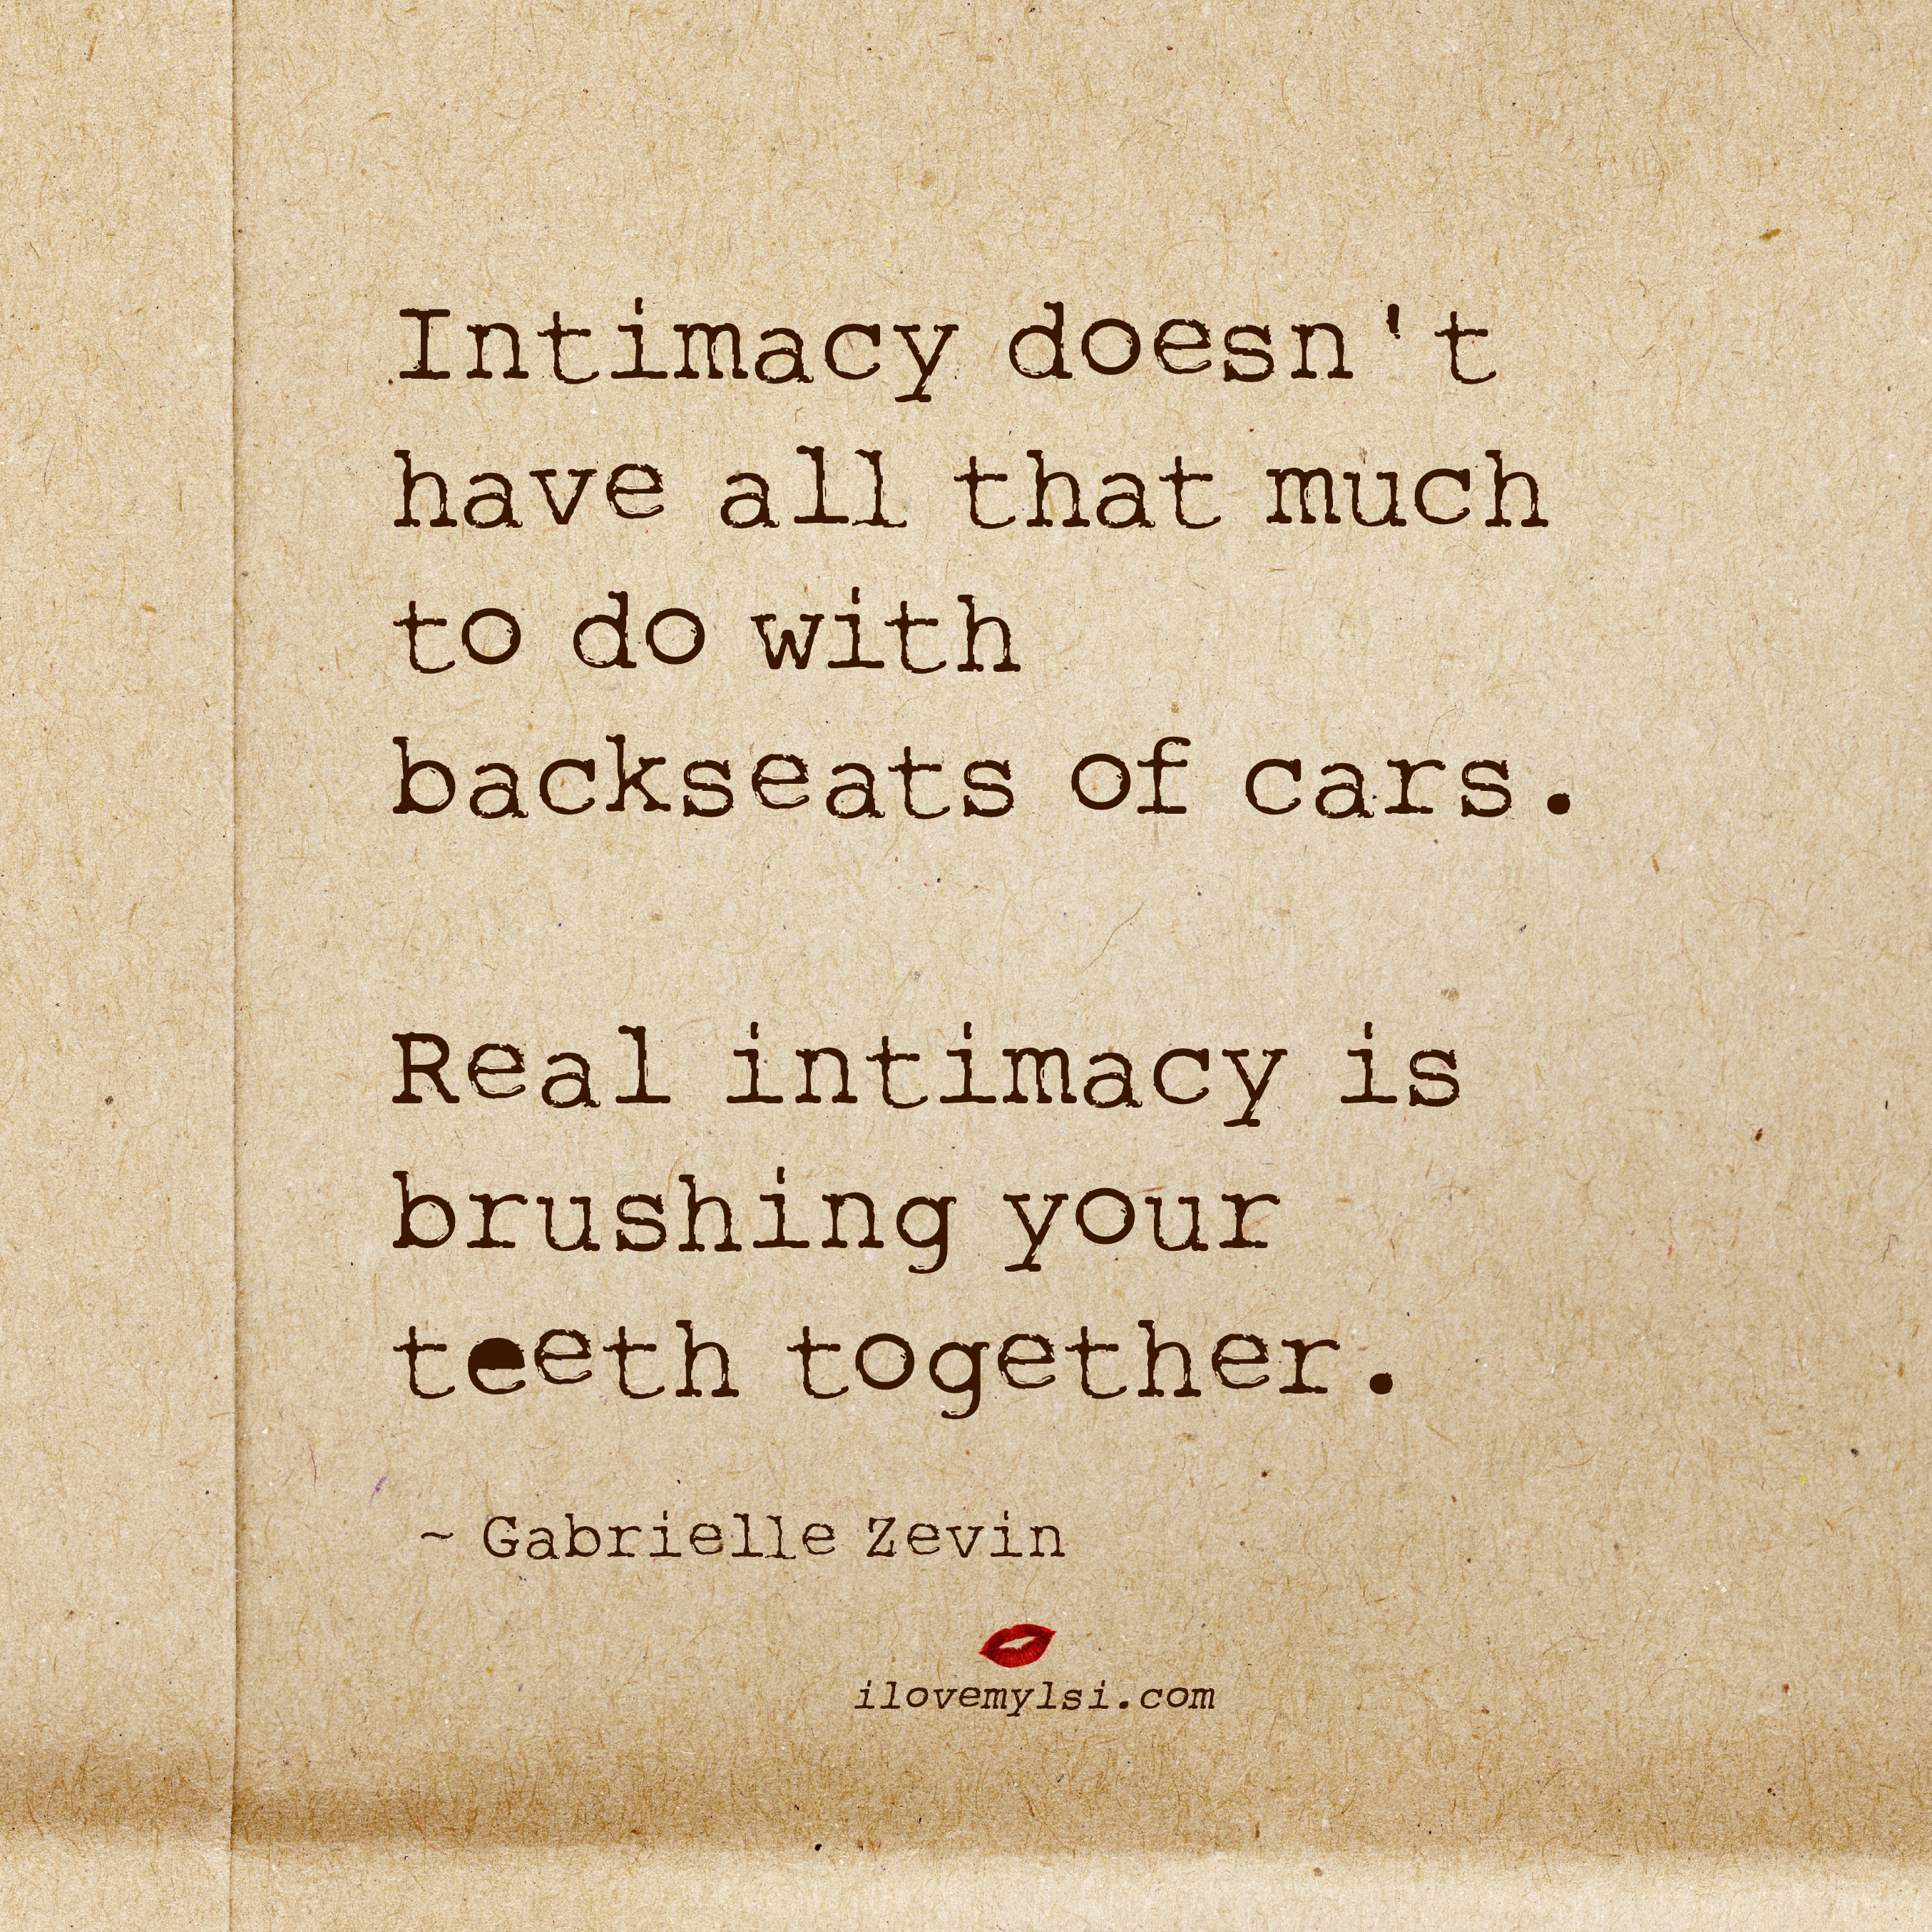 The 25 Most Romantic Love Quotes You Will Ever Read: Real Intimacy Is...